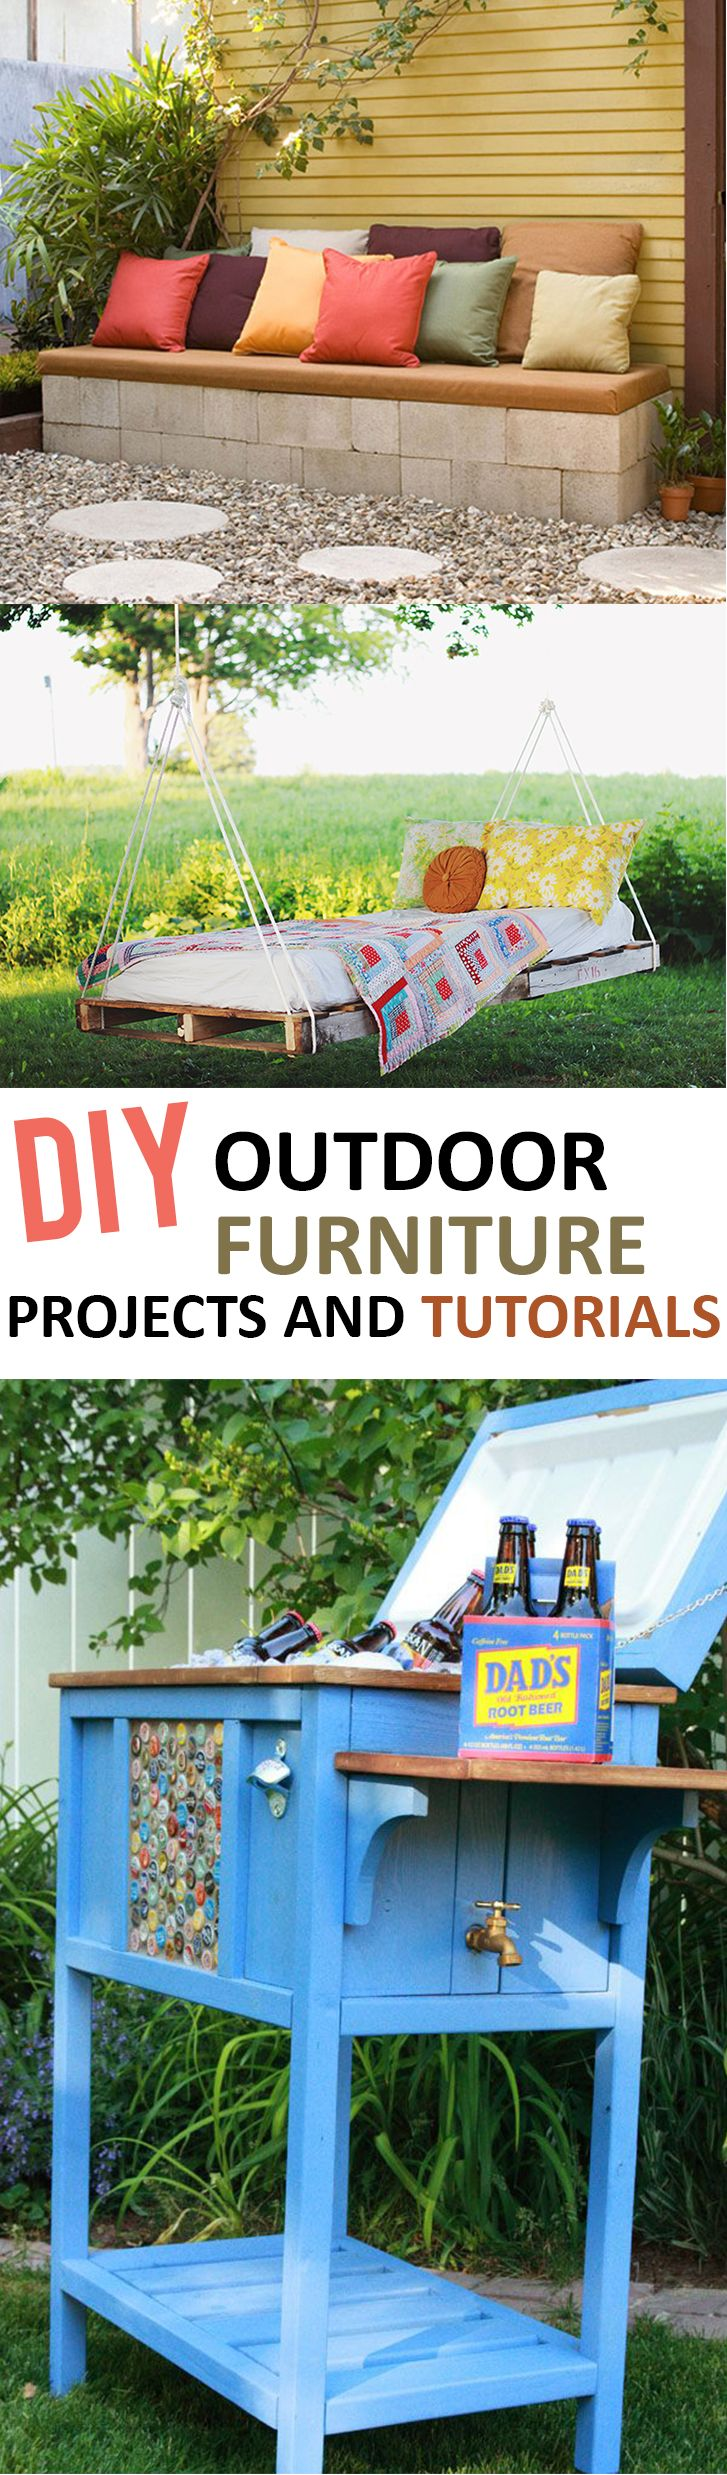 164 best diy outdoor spaces images on pinterest decks outdoor diy outdoor furniture projects and tutorials solutioingenieria Gallery